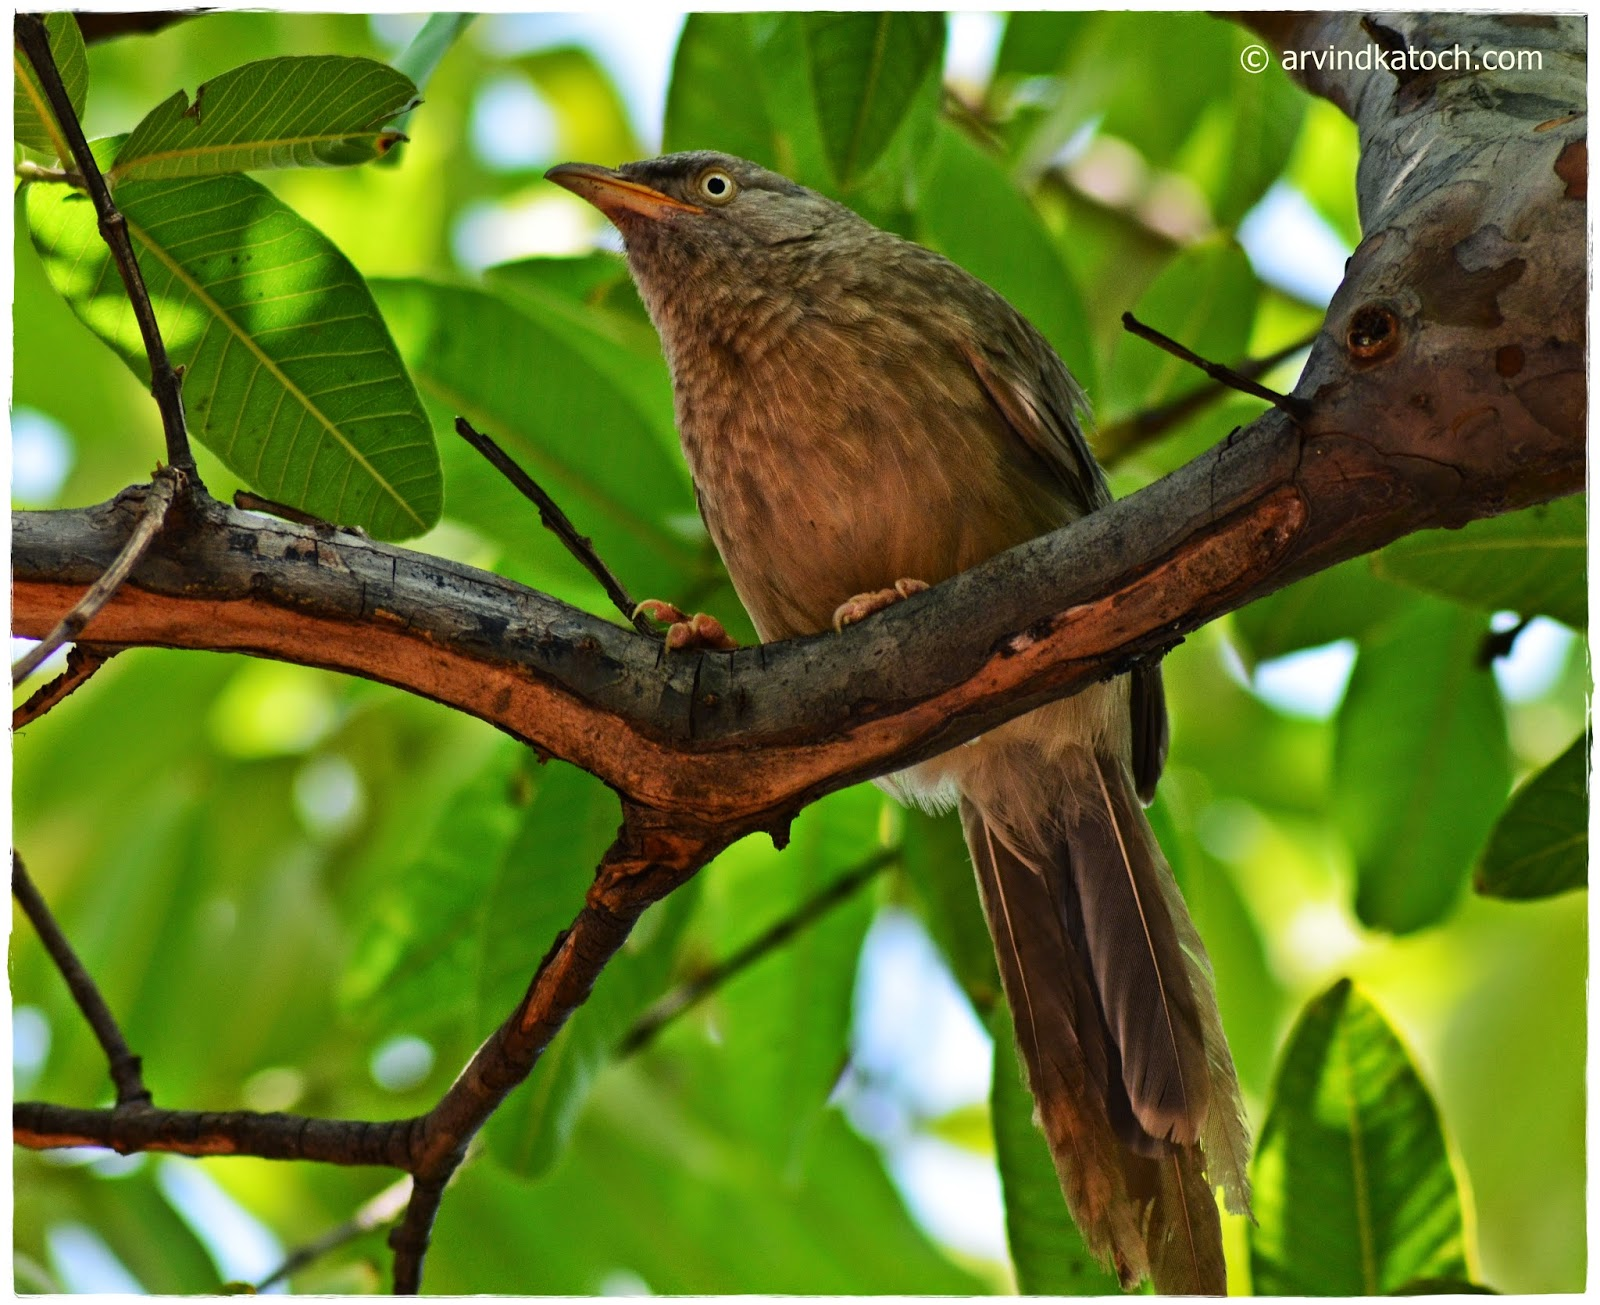 Jungle Babbler, Seven Brother, Indian bird, Grey color bird,